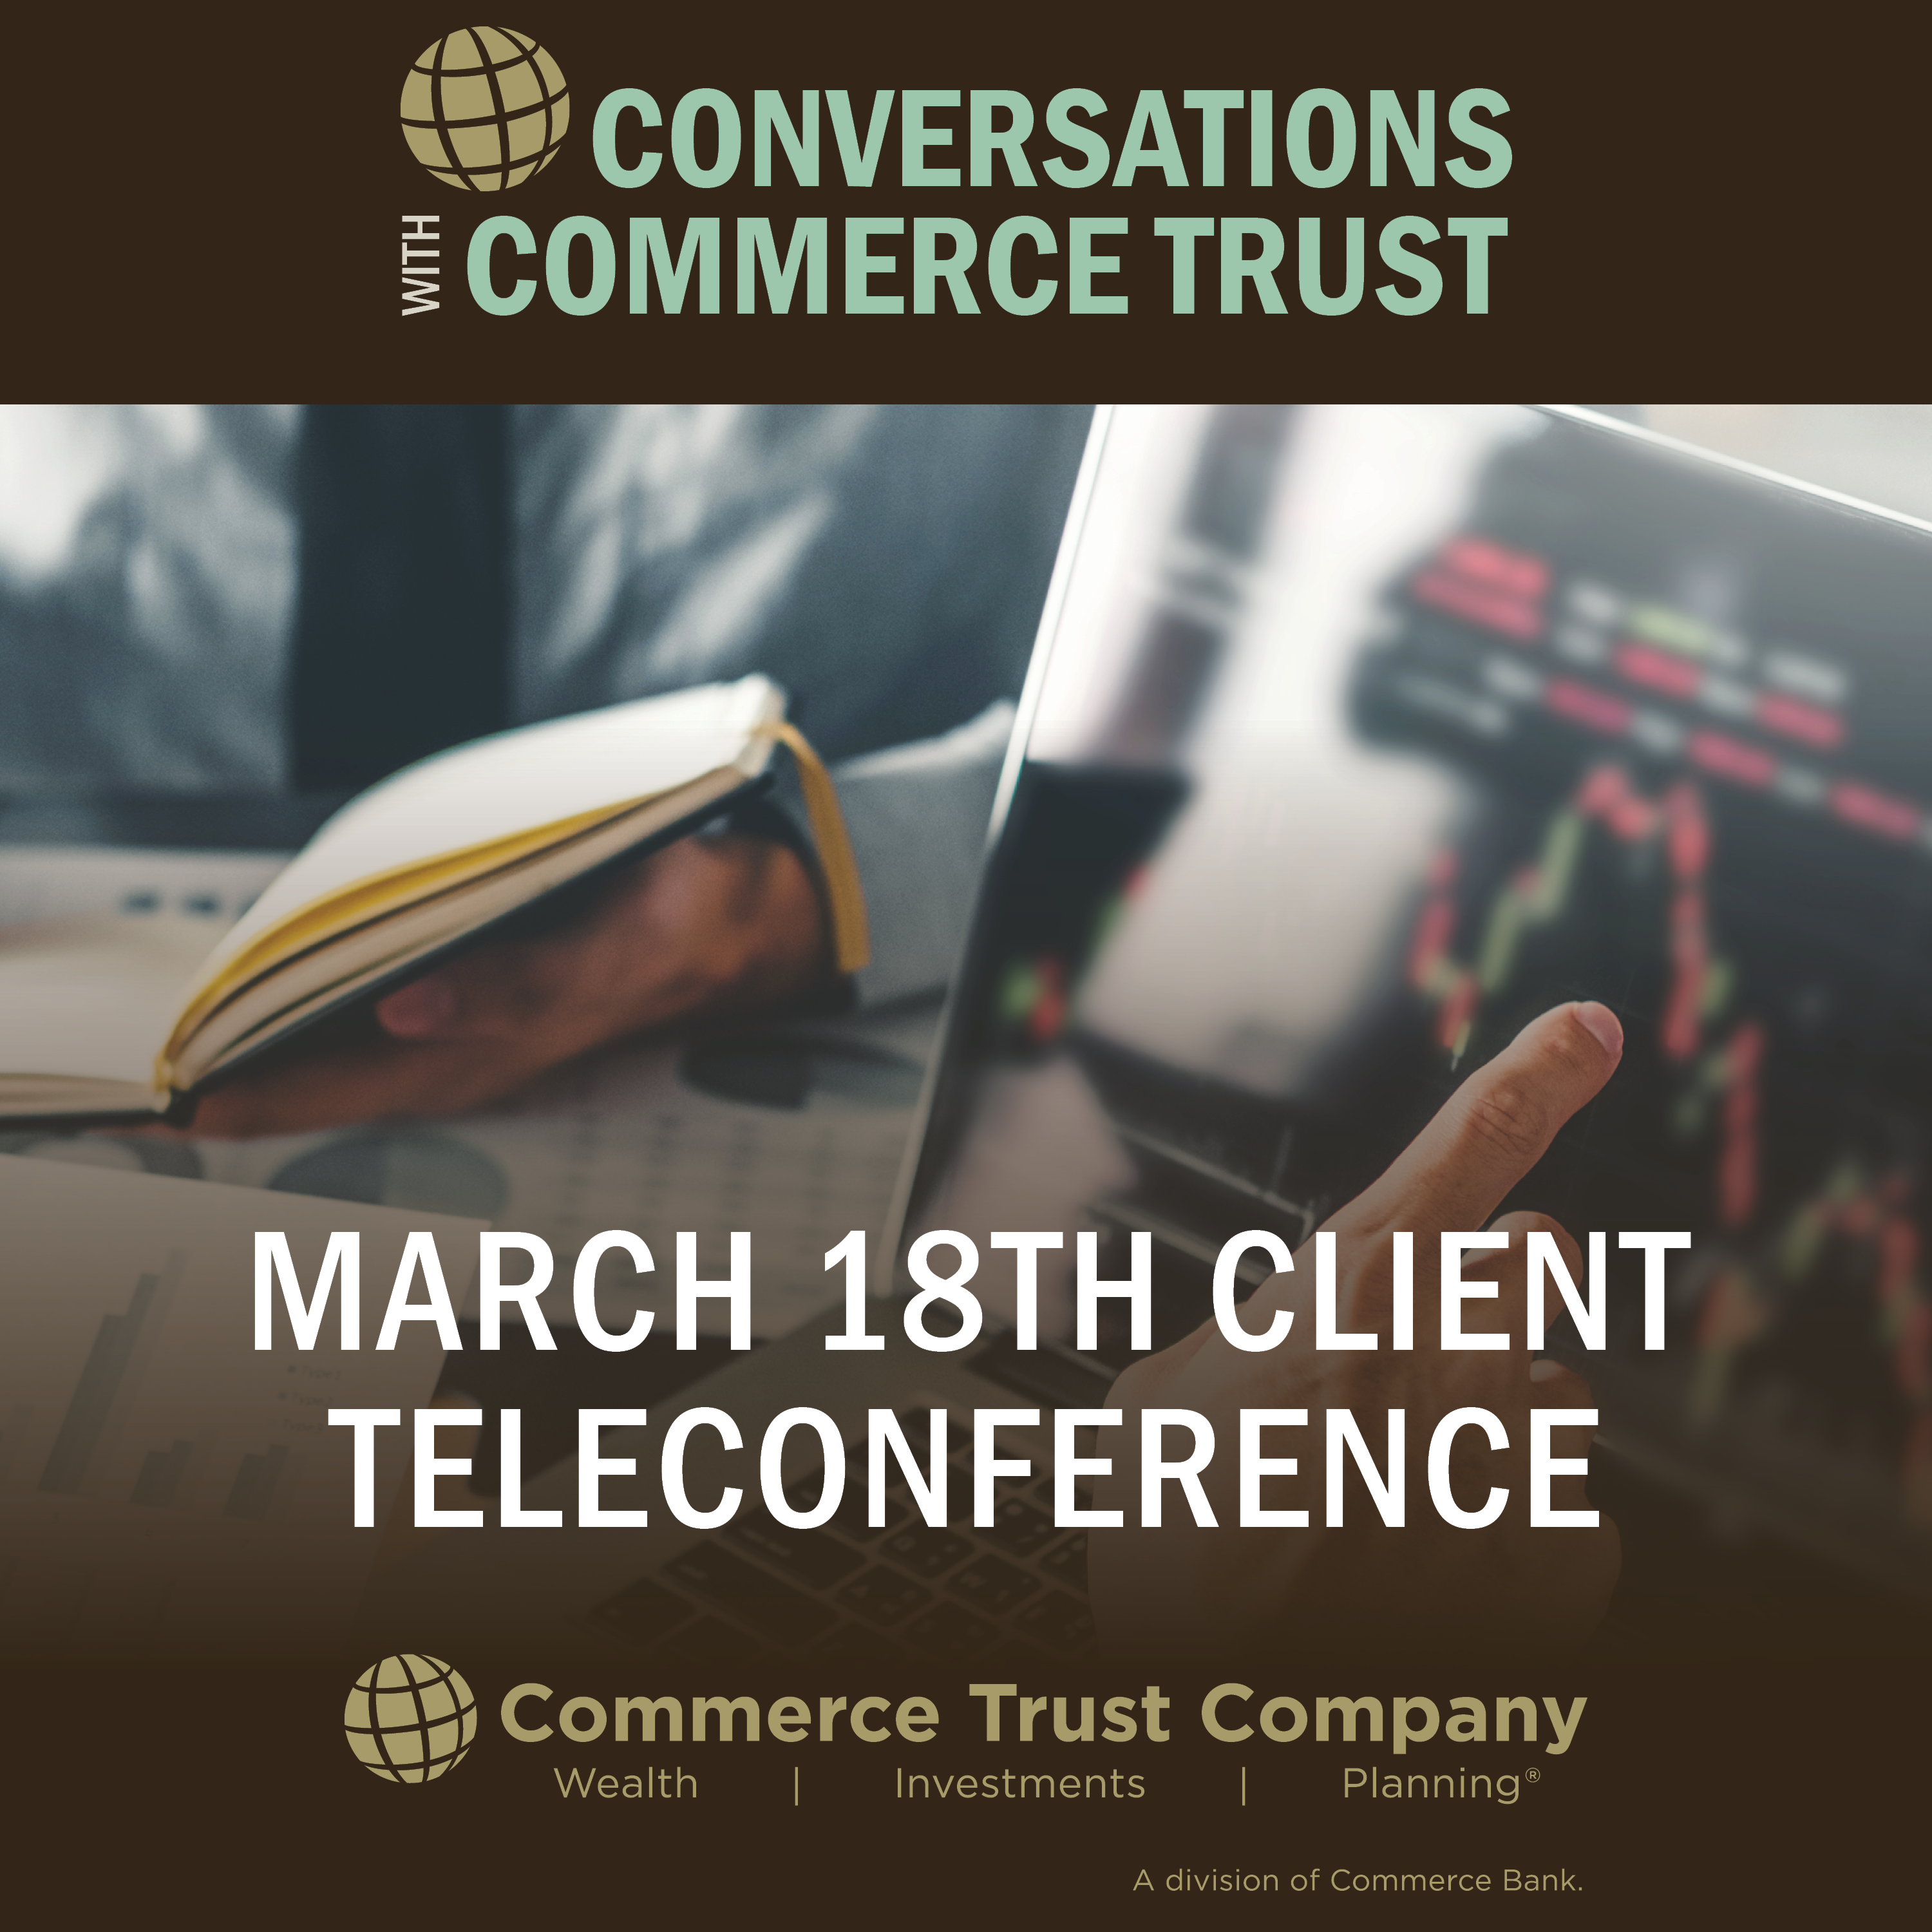 March 18th Teleconference cover image